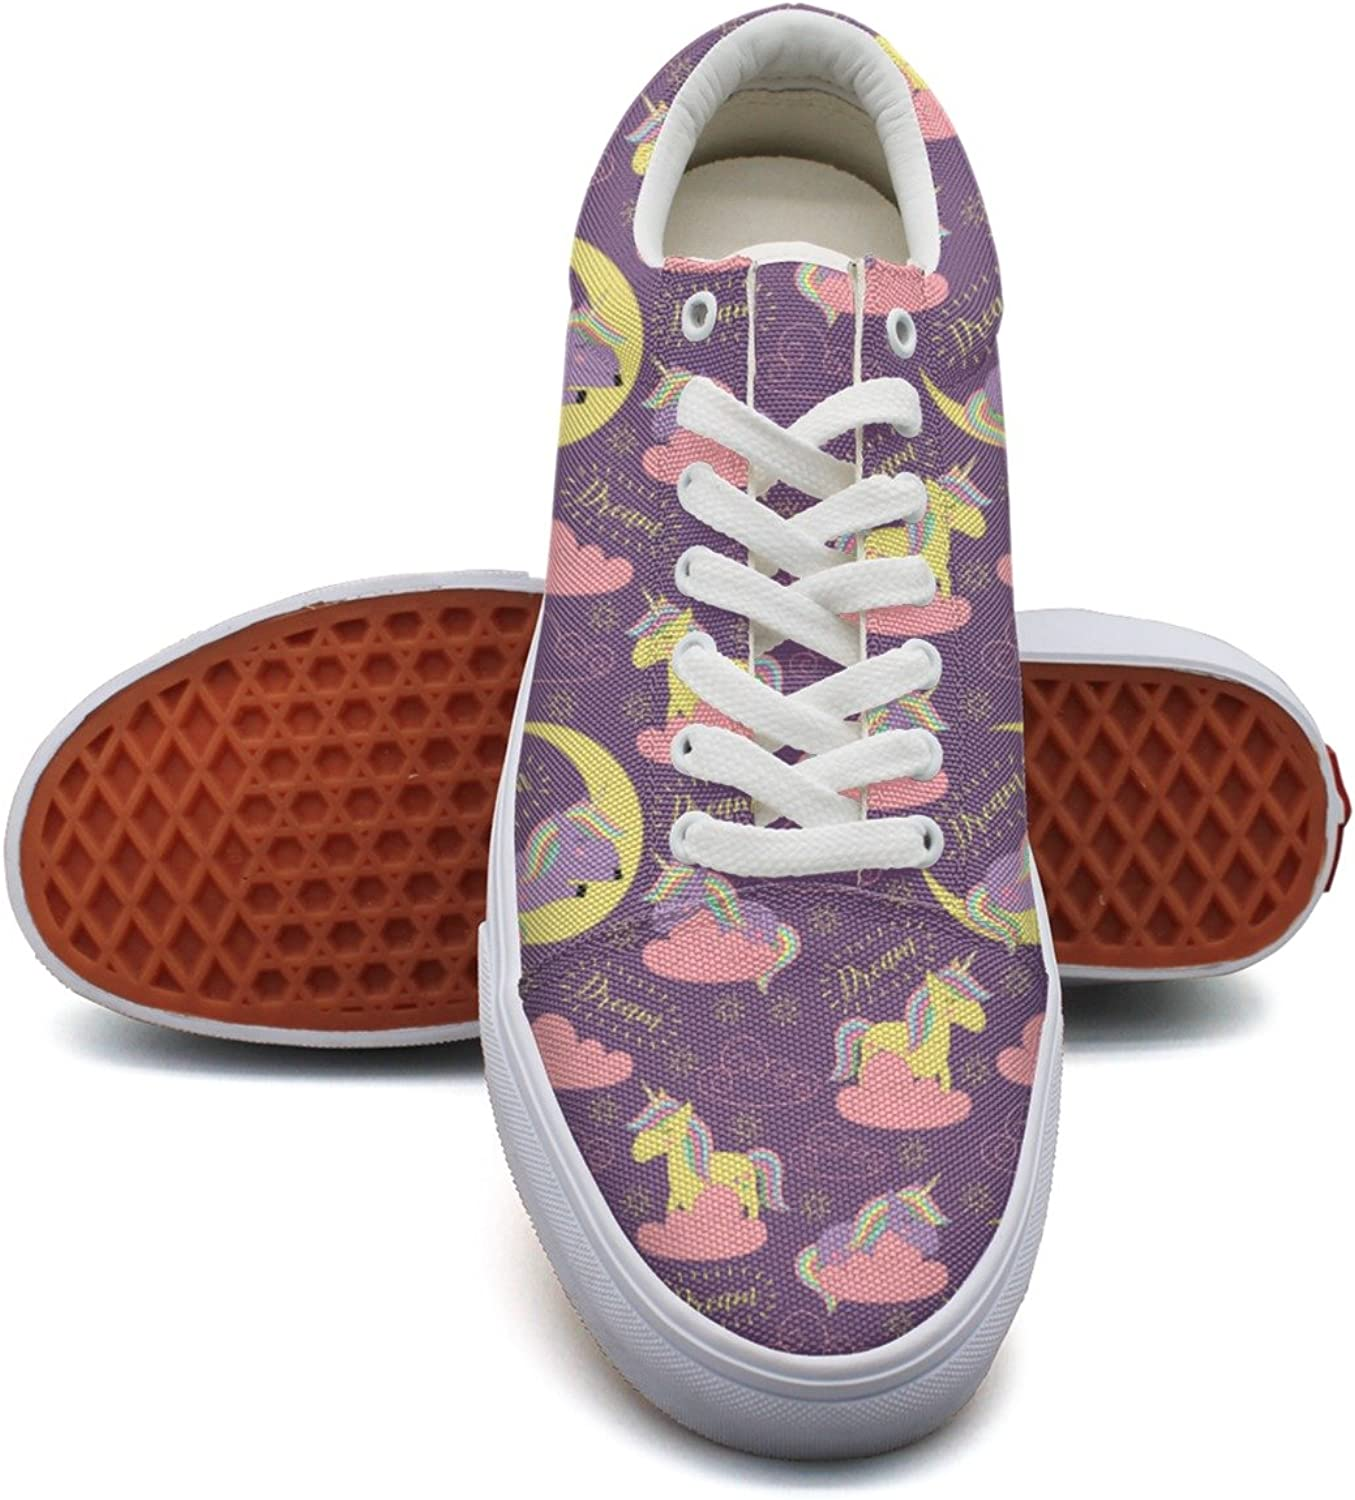 Feenfling Sleeping Unicorn with Dream Womens Casual Canvas shoes Low Top Cool Tennis shoes for Woman